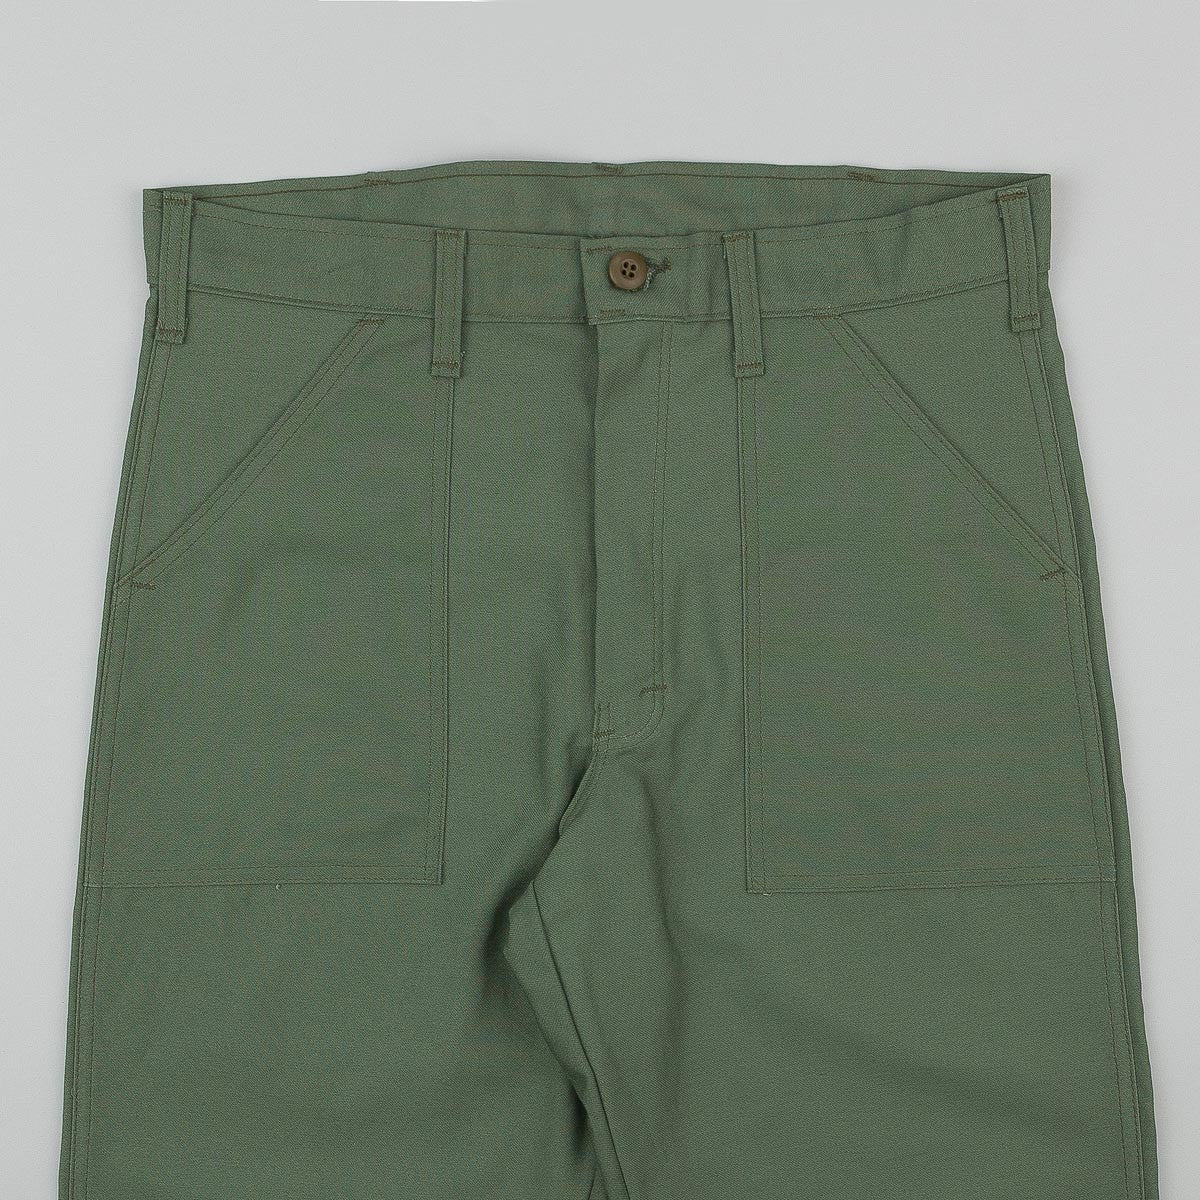 Stan Ray Original 107 4 Pocket Fatigue Trousers - Green